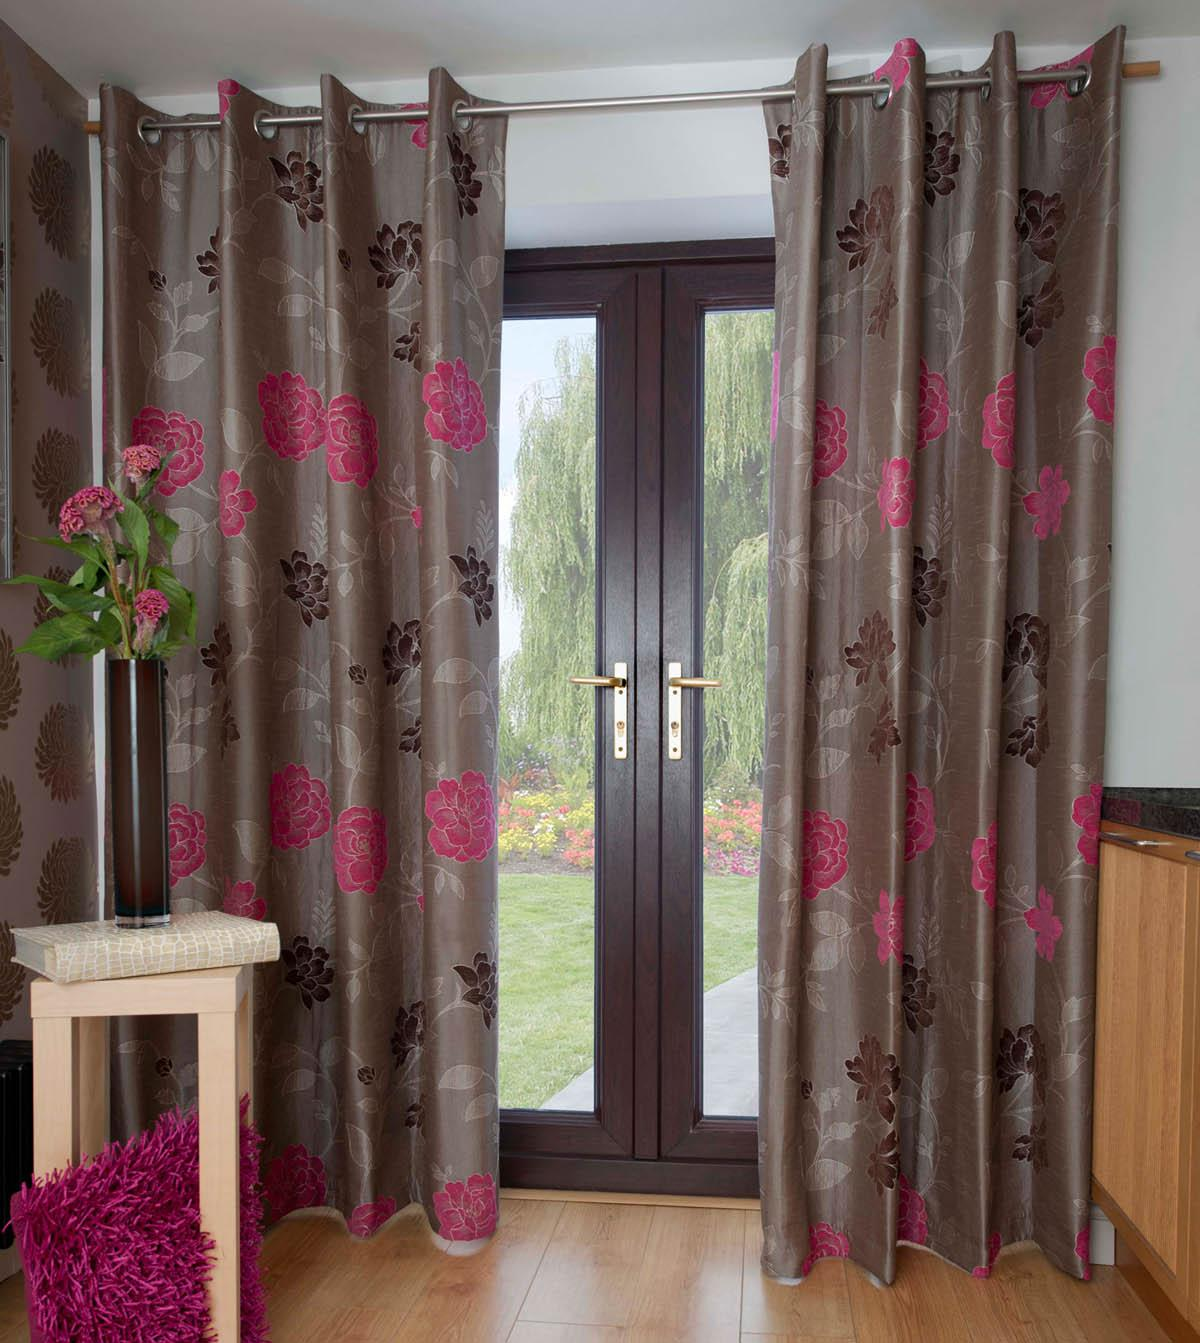 Cocoarose Casablanca Ready Made Eyelet Curtains